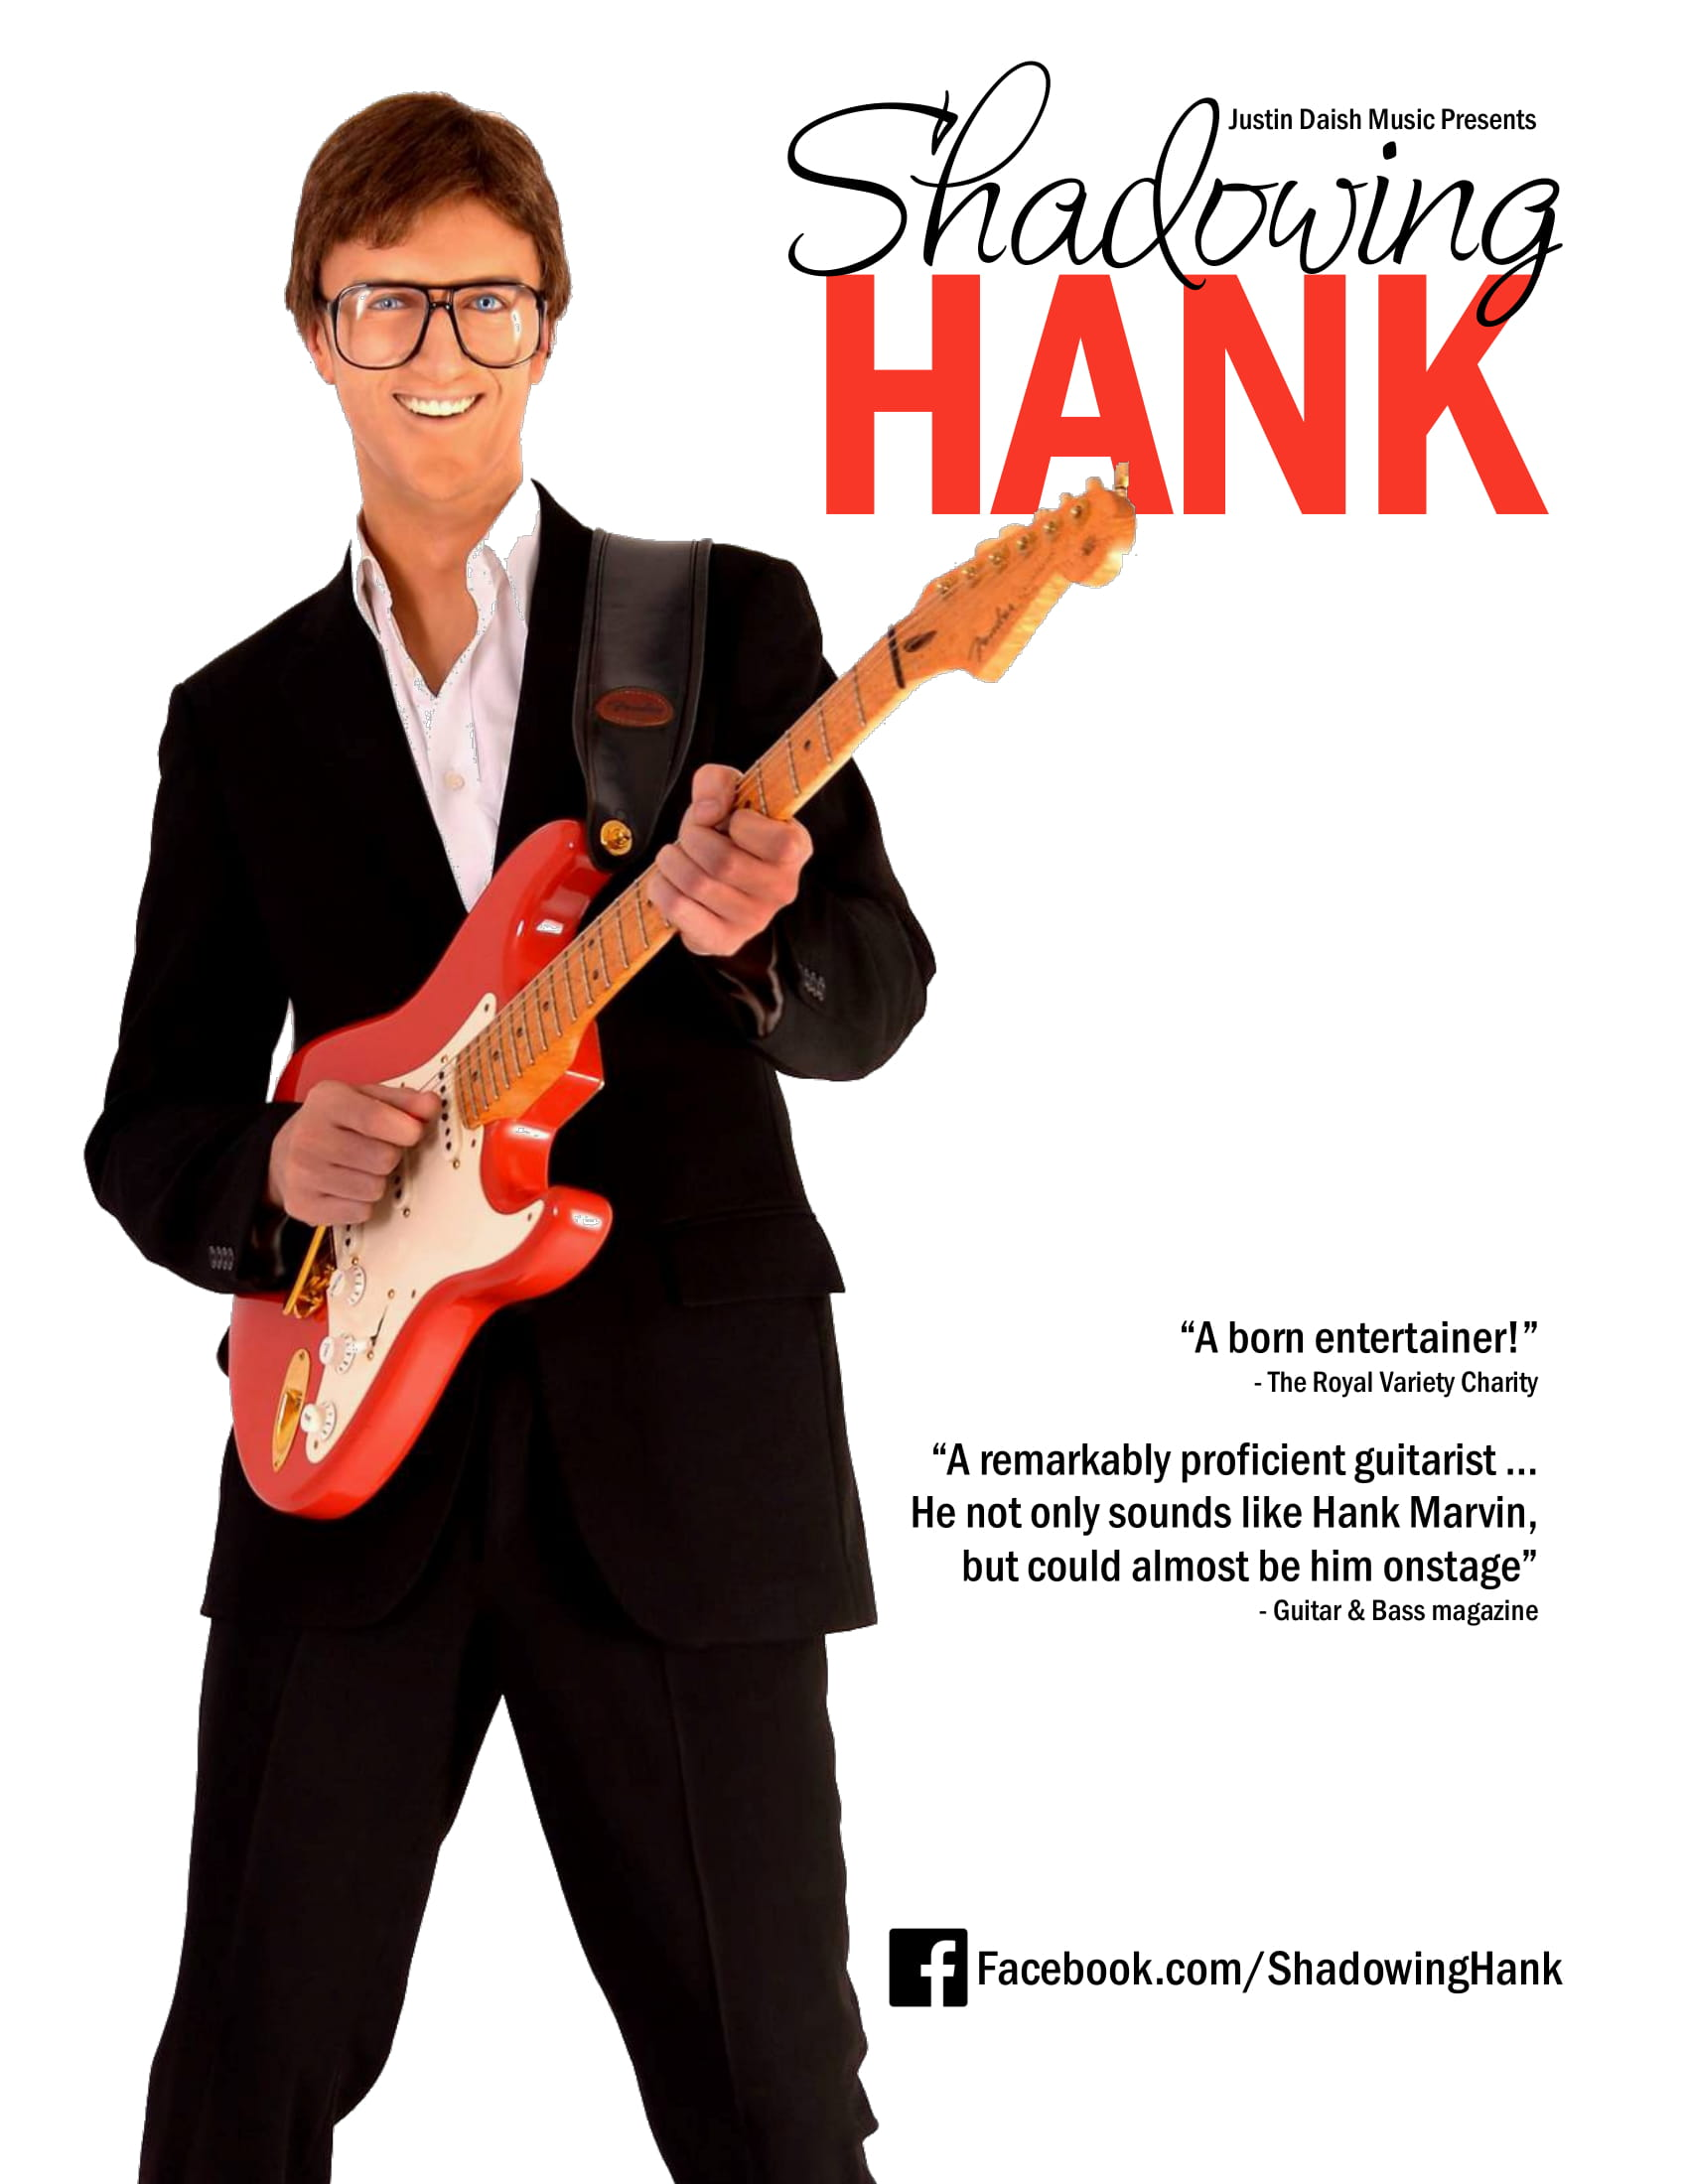 Shadowing Hank - A Celebration of the music of Hank Marvin banner image